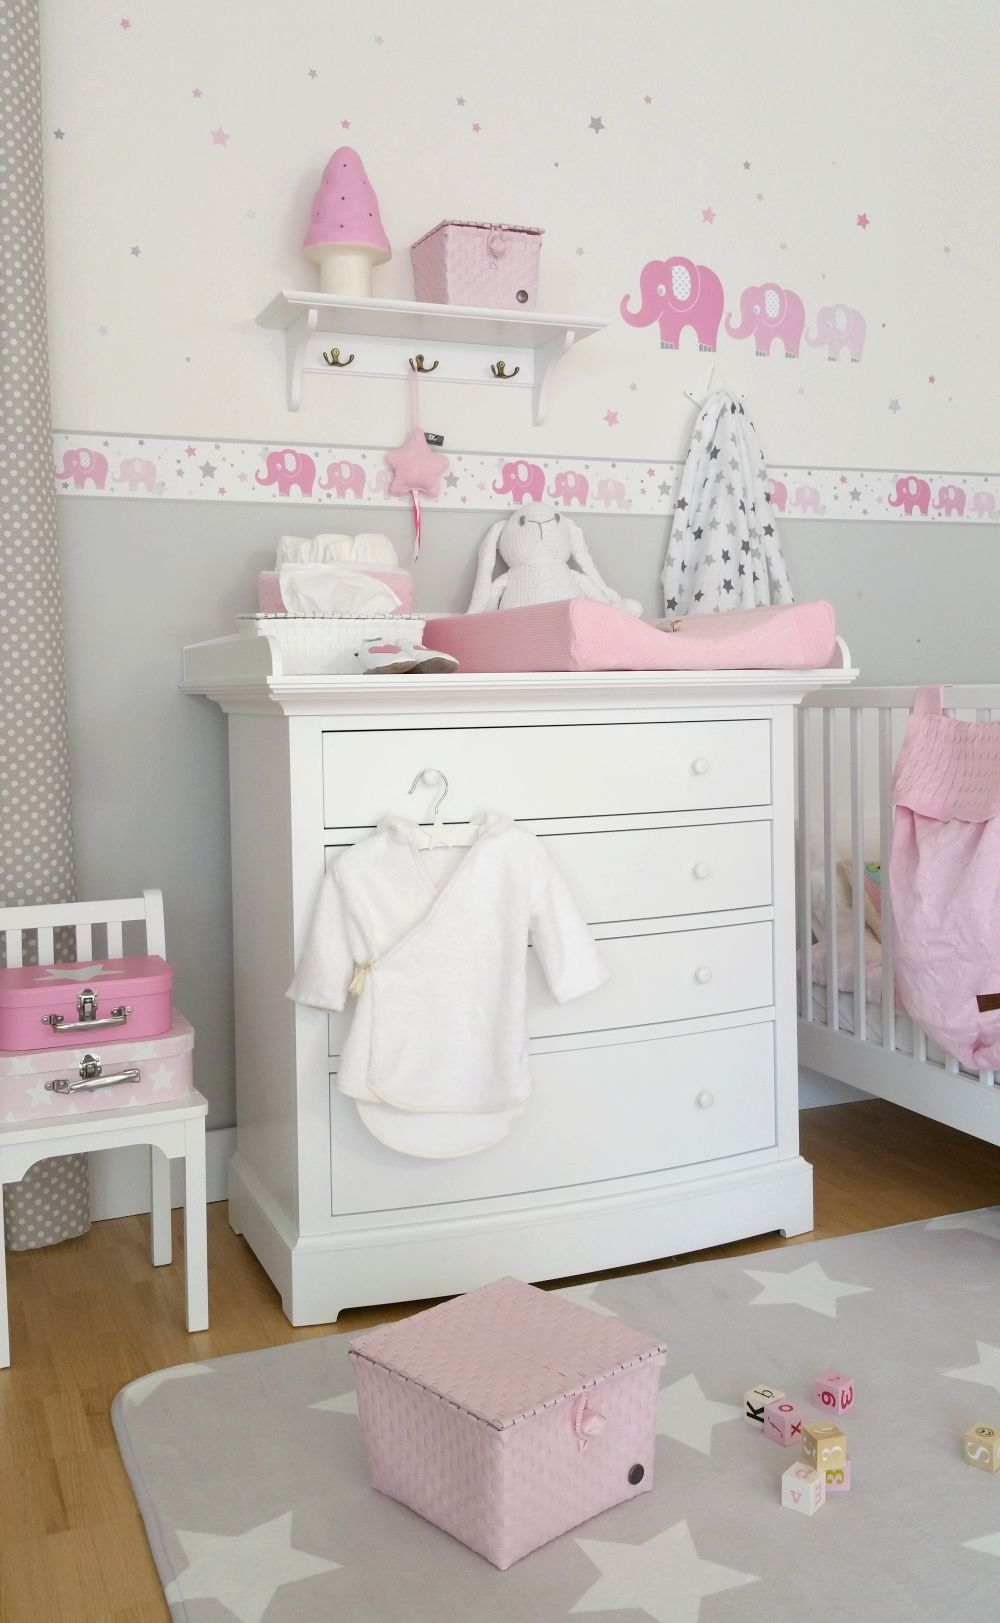 kinderzimmer bord re elefanten rosa grau selbstklebend pinterest babies baby zimmer and room. Black Bedroom Furniture Sets. Home Design Ideas